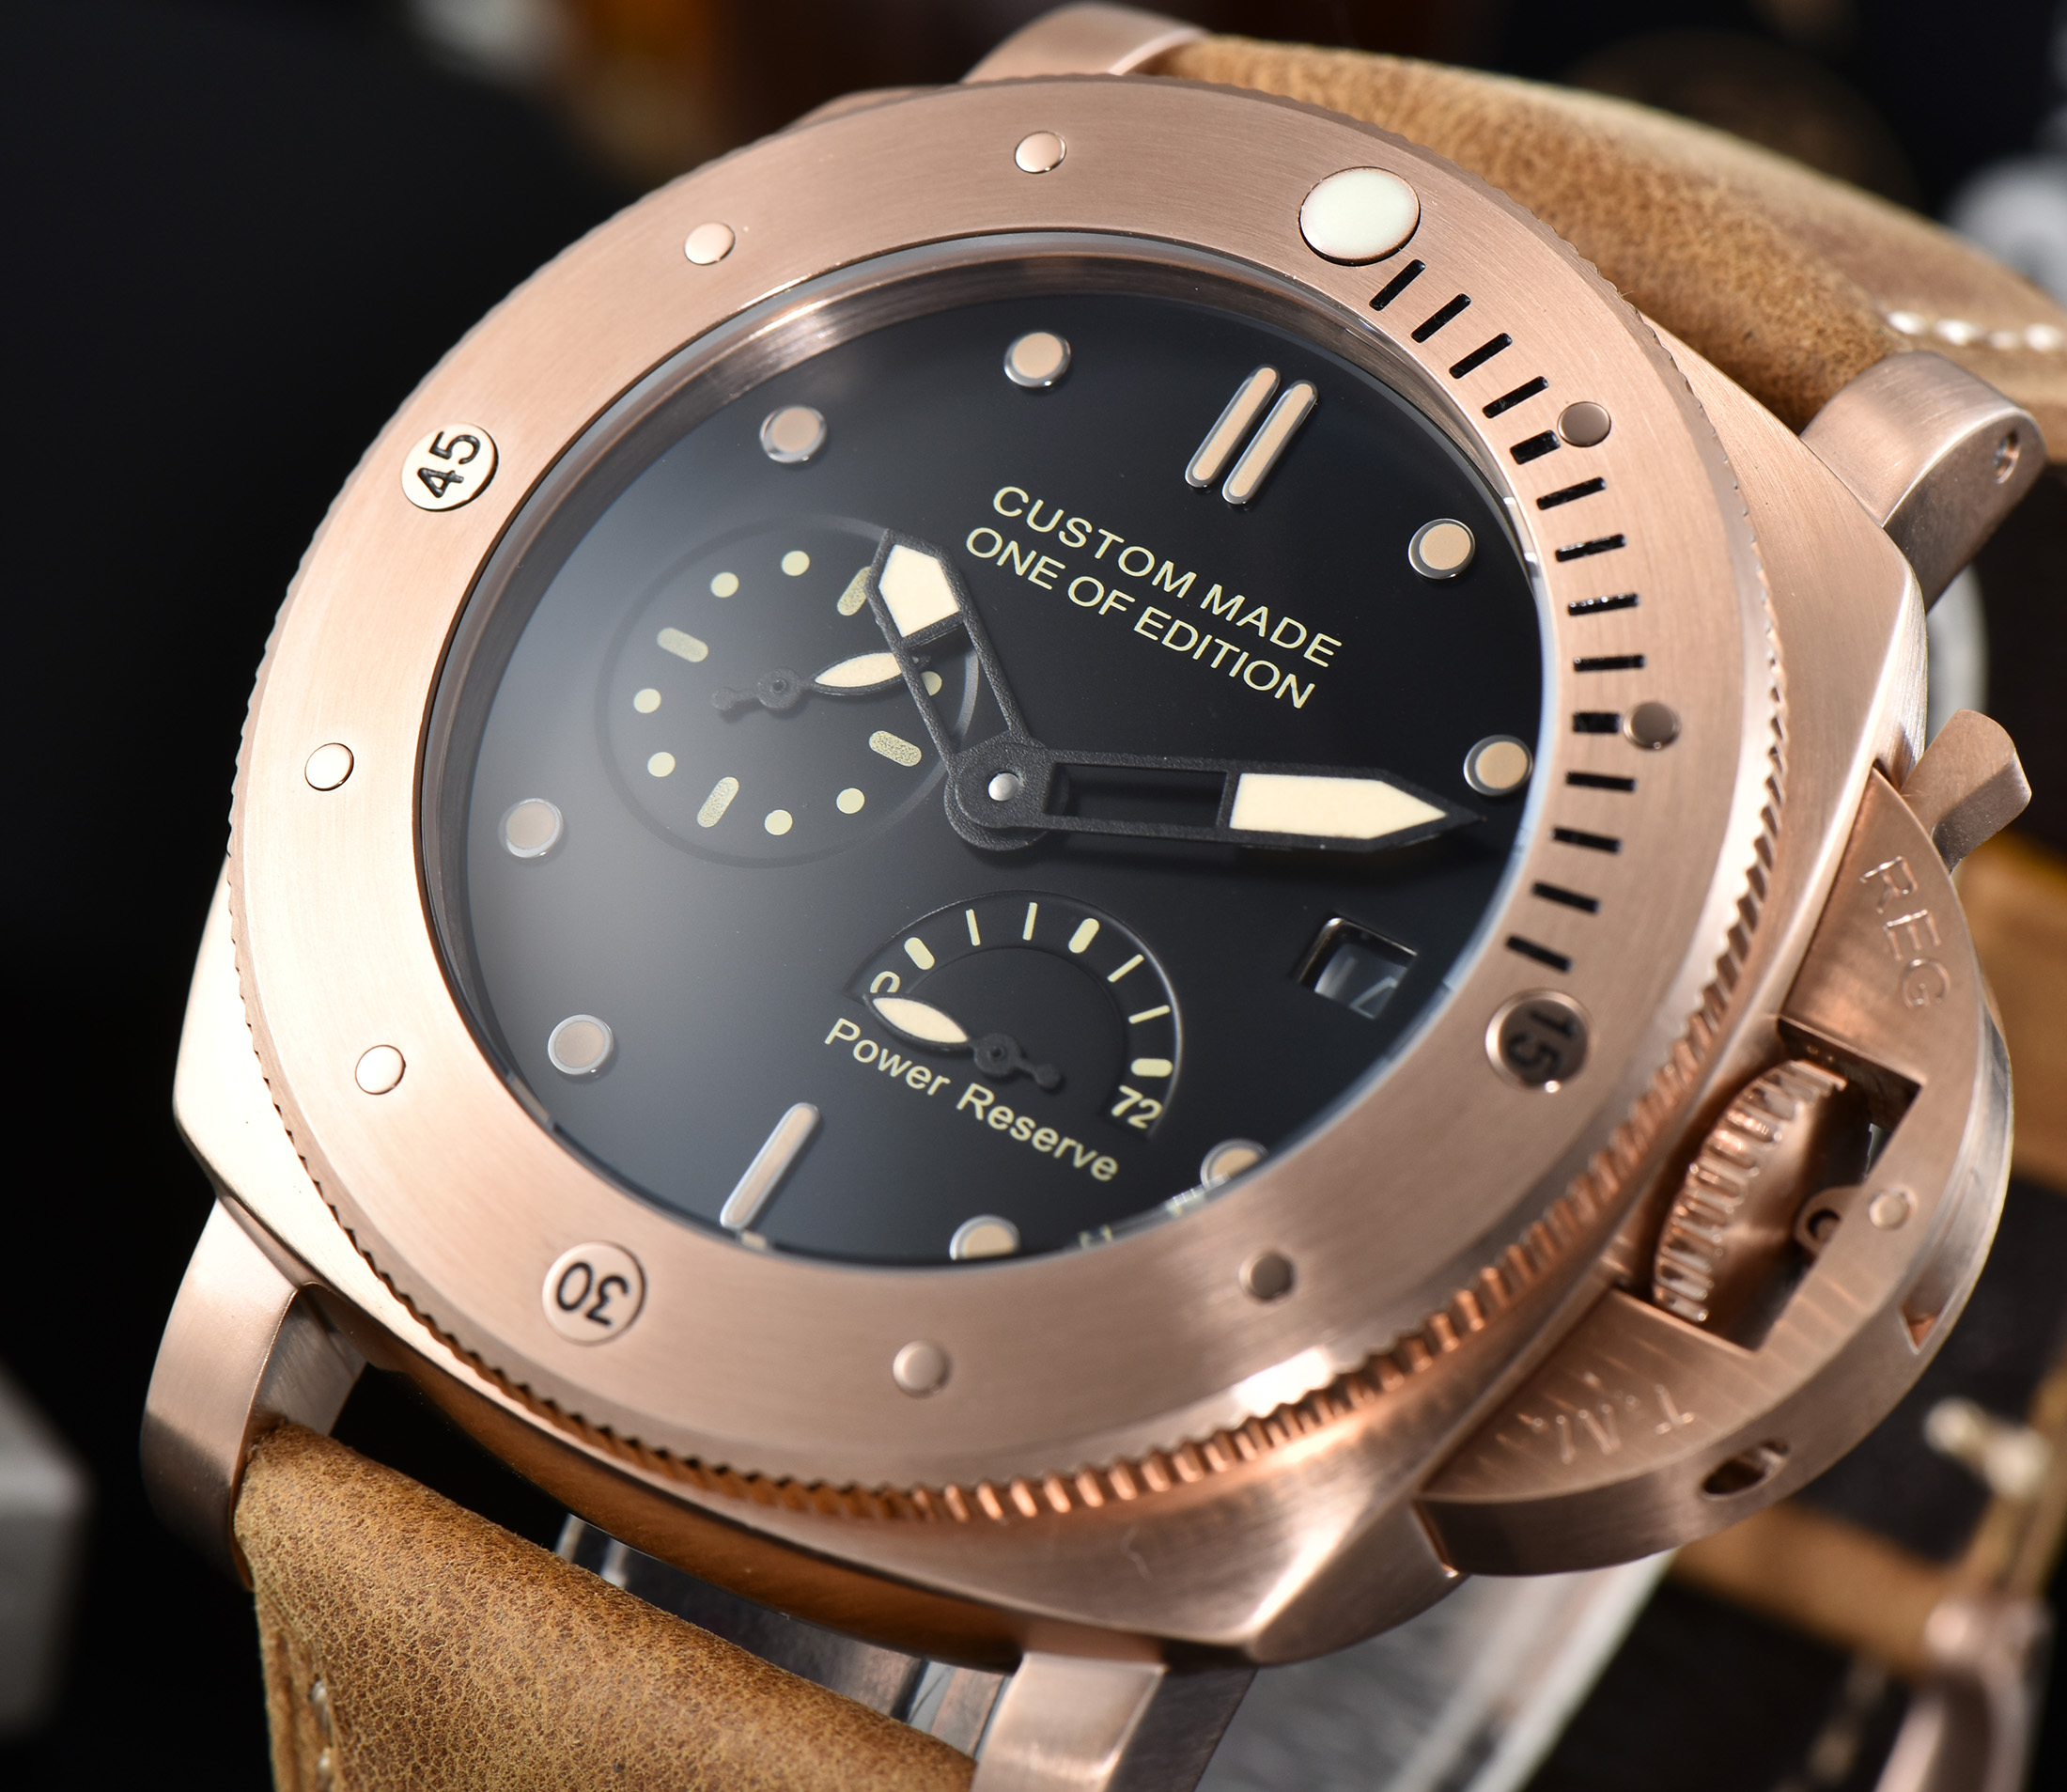 Limited edition 47mm retro gold pvd automatic watch military power reserve parnis 2530 pam leather strap